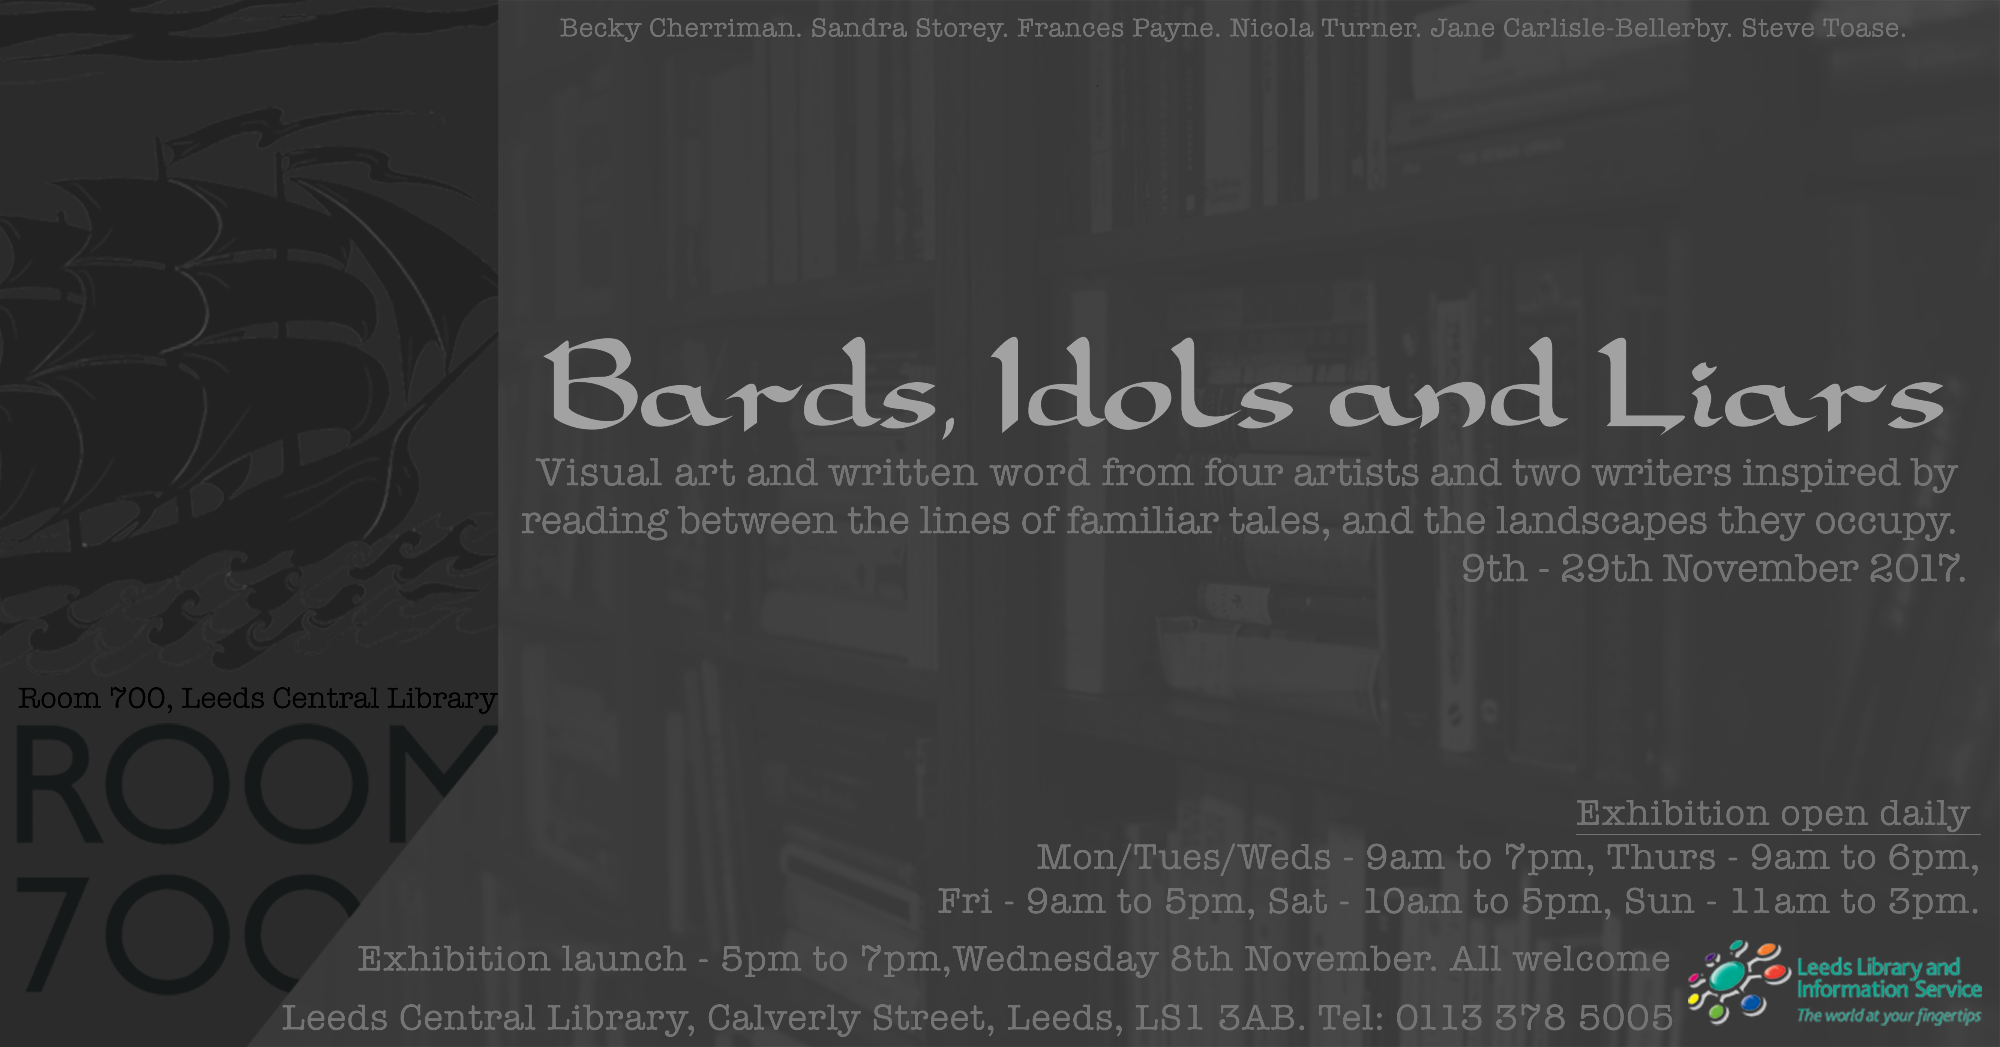 Bards, Liars and Idols Exhibition